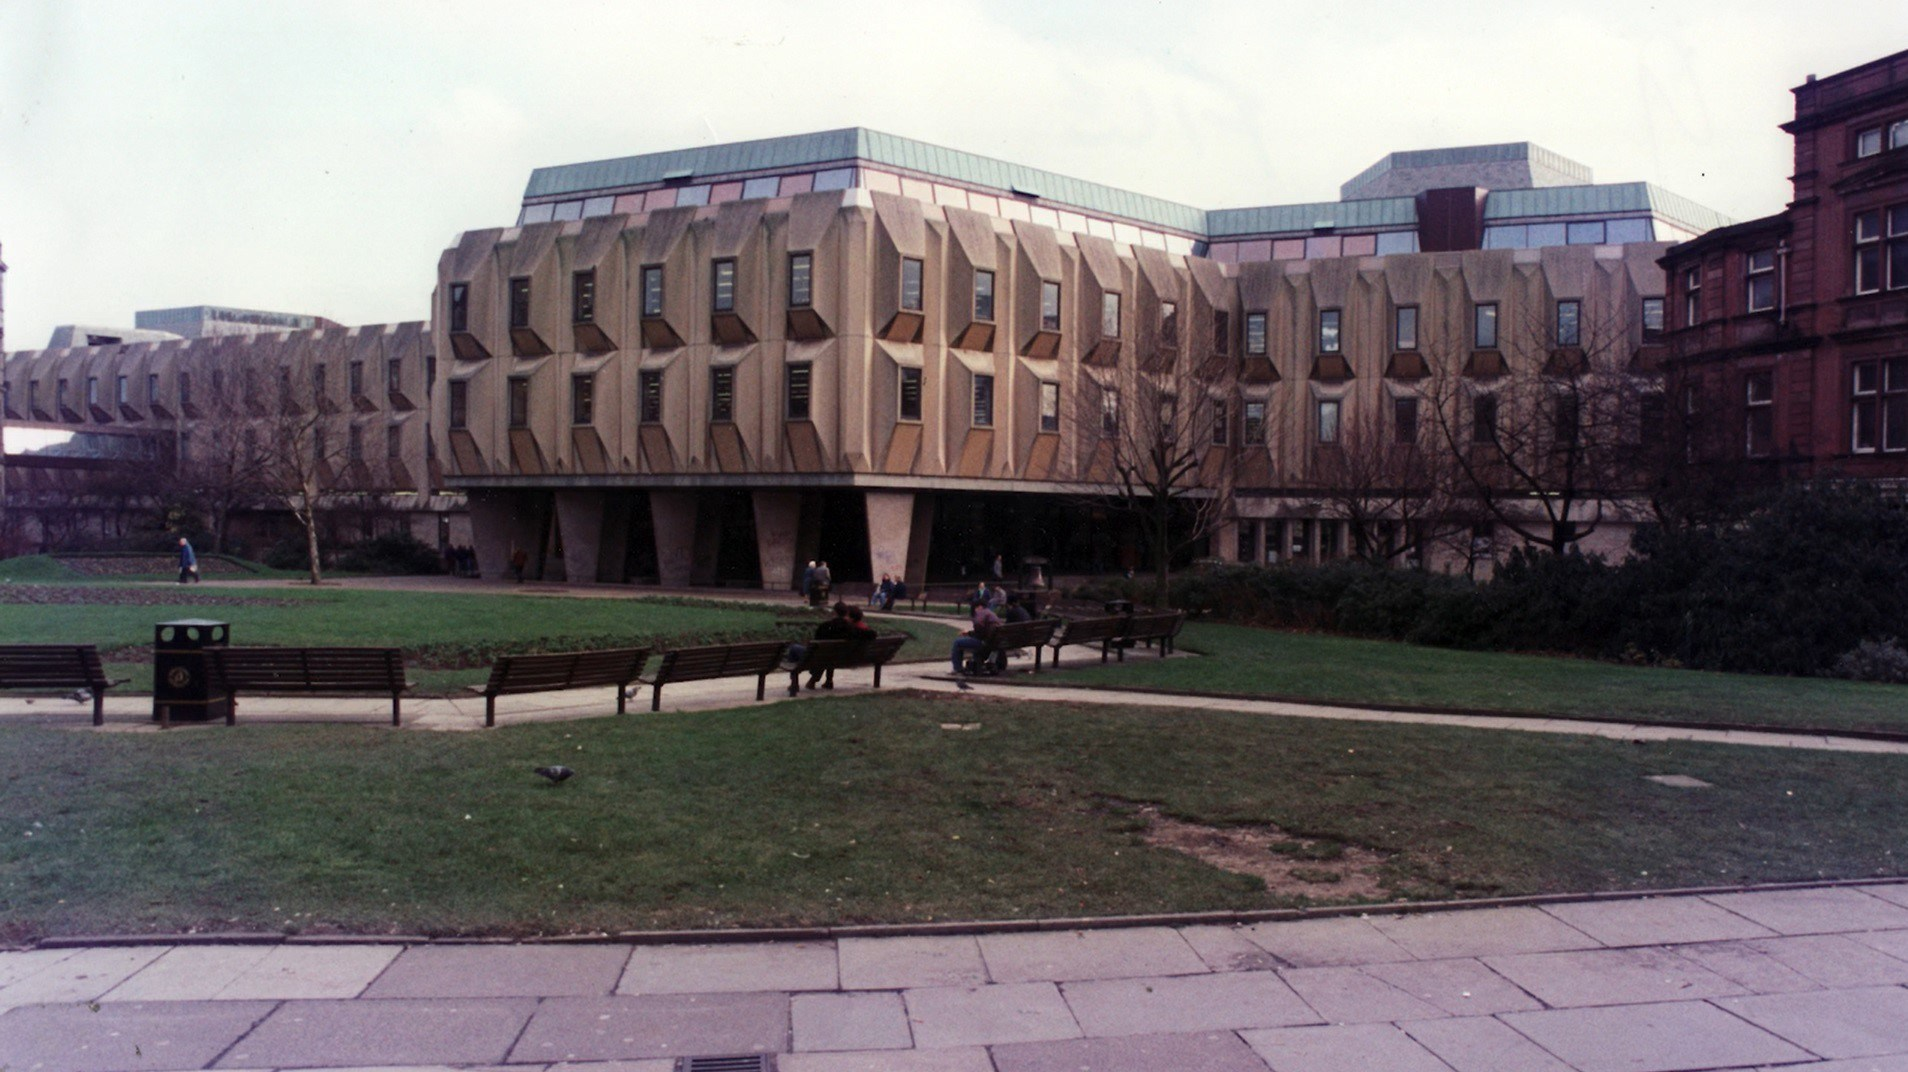 The old Sheffield Peace Gardens and Town Hall 'Egg Box' Extension